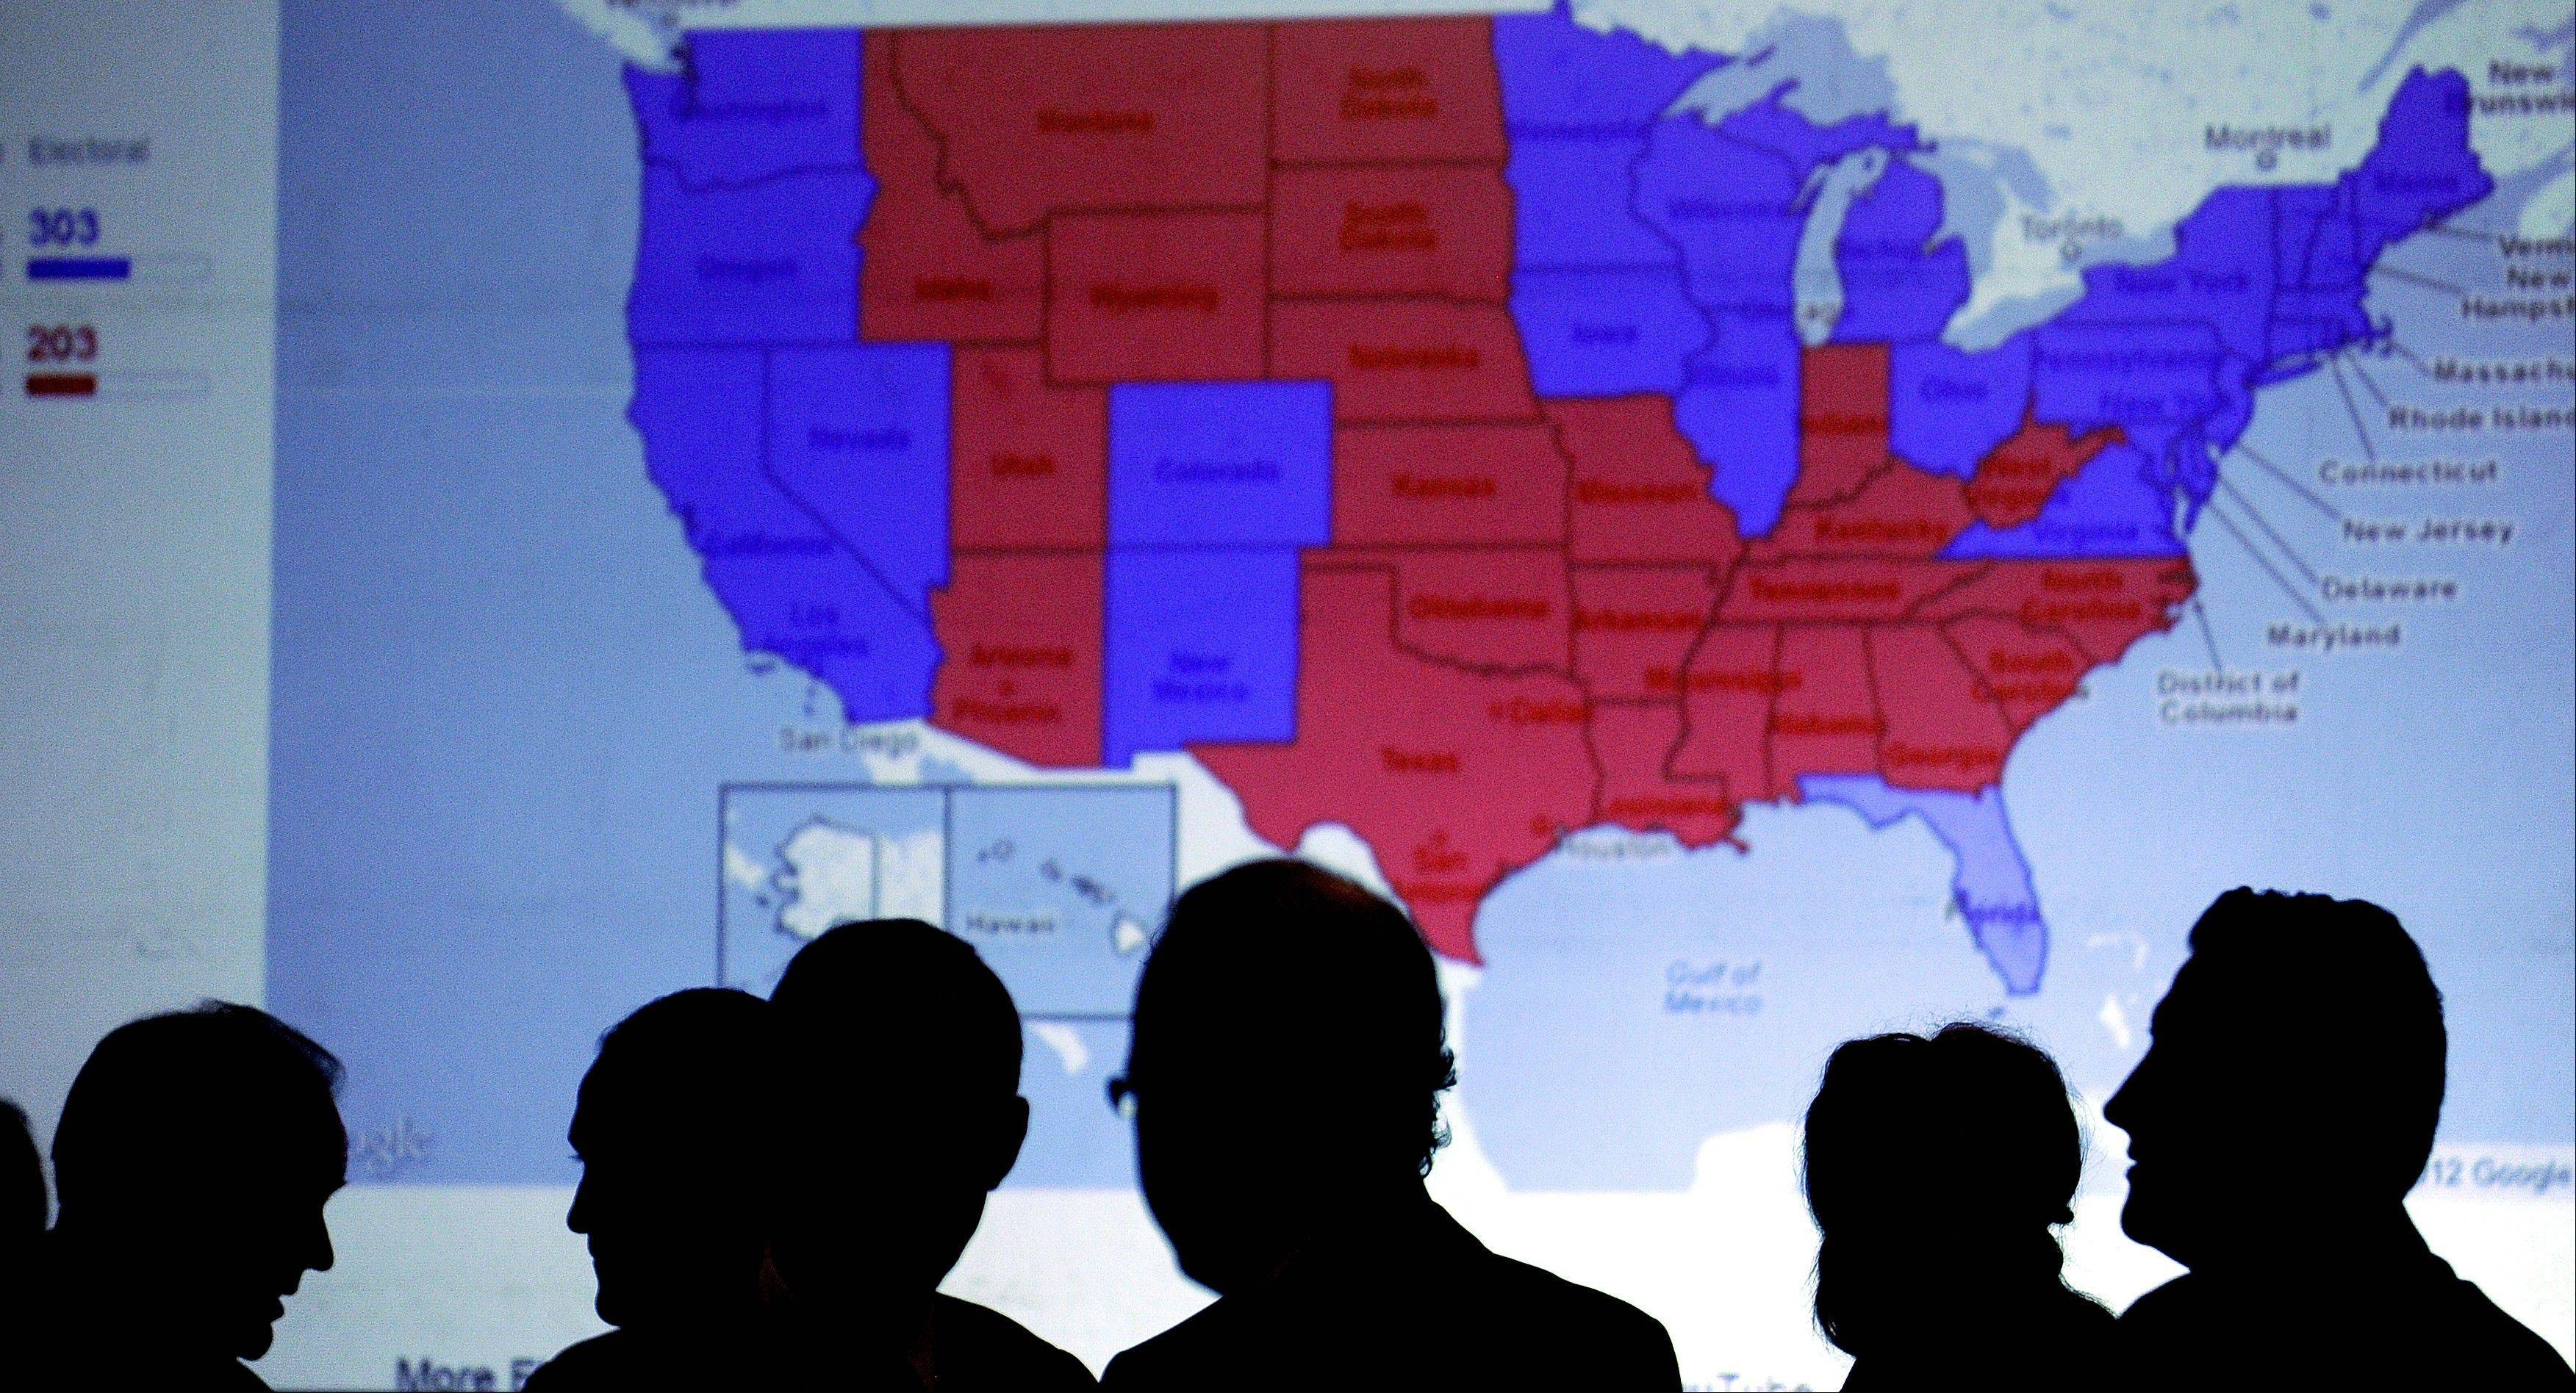 An electoral U.S. map displays red states v. blue states on election night.